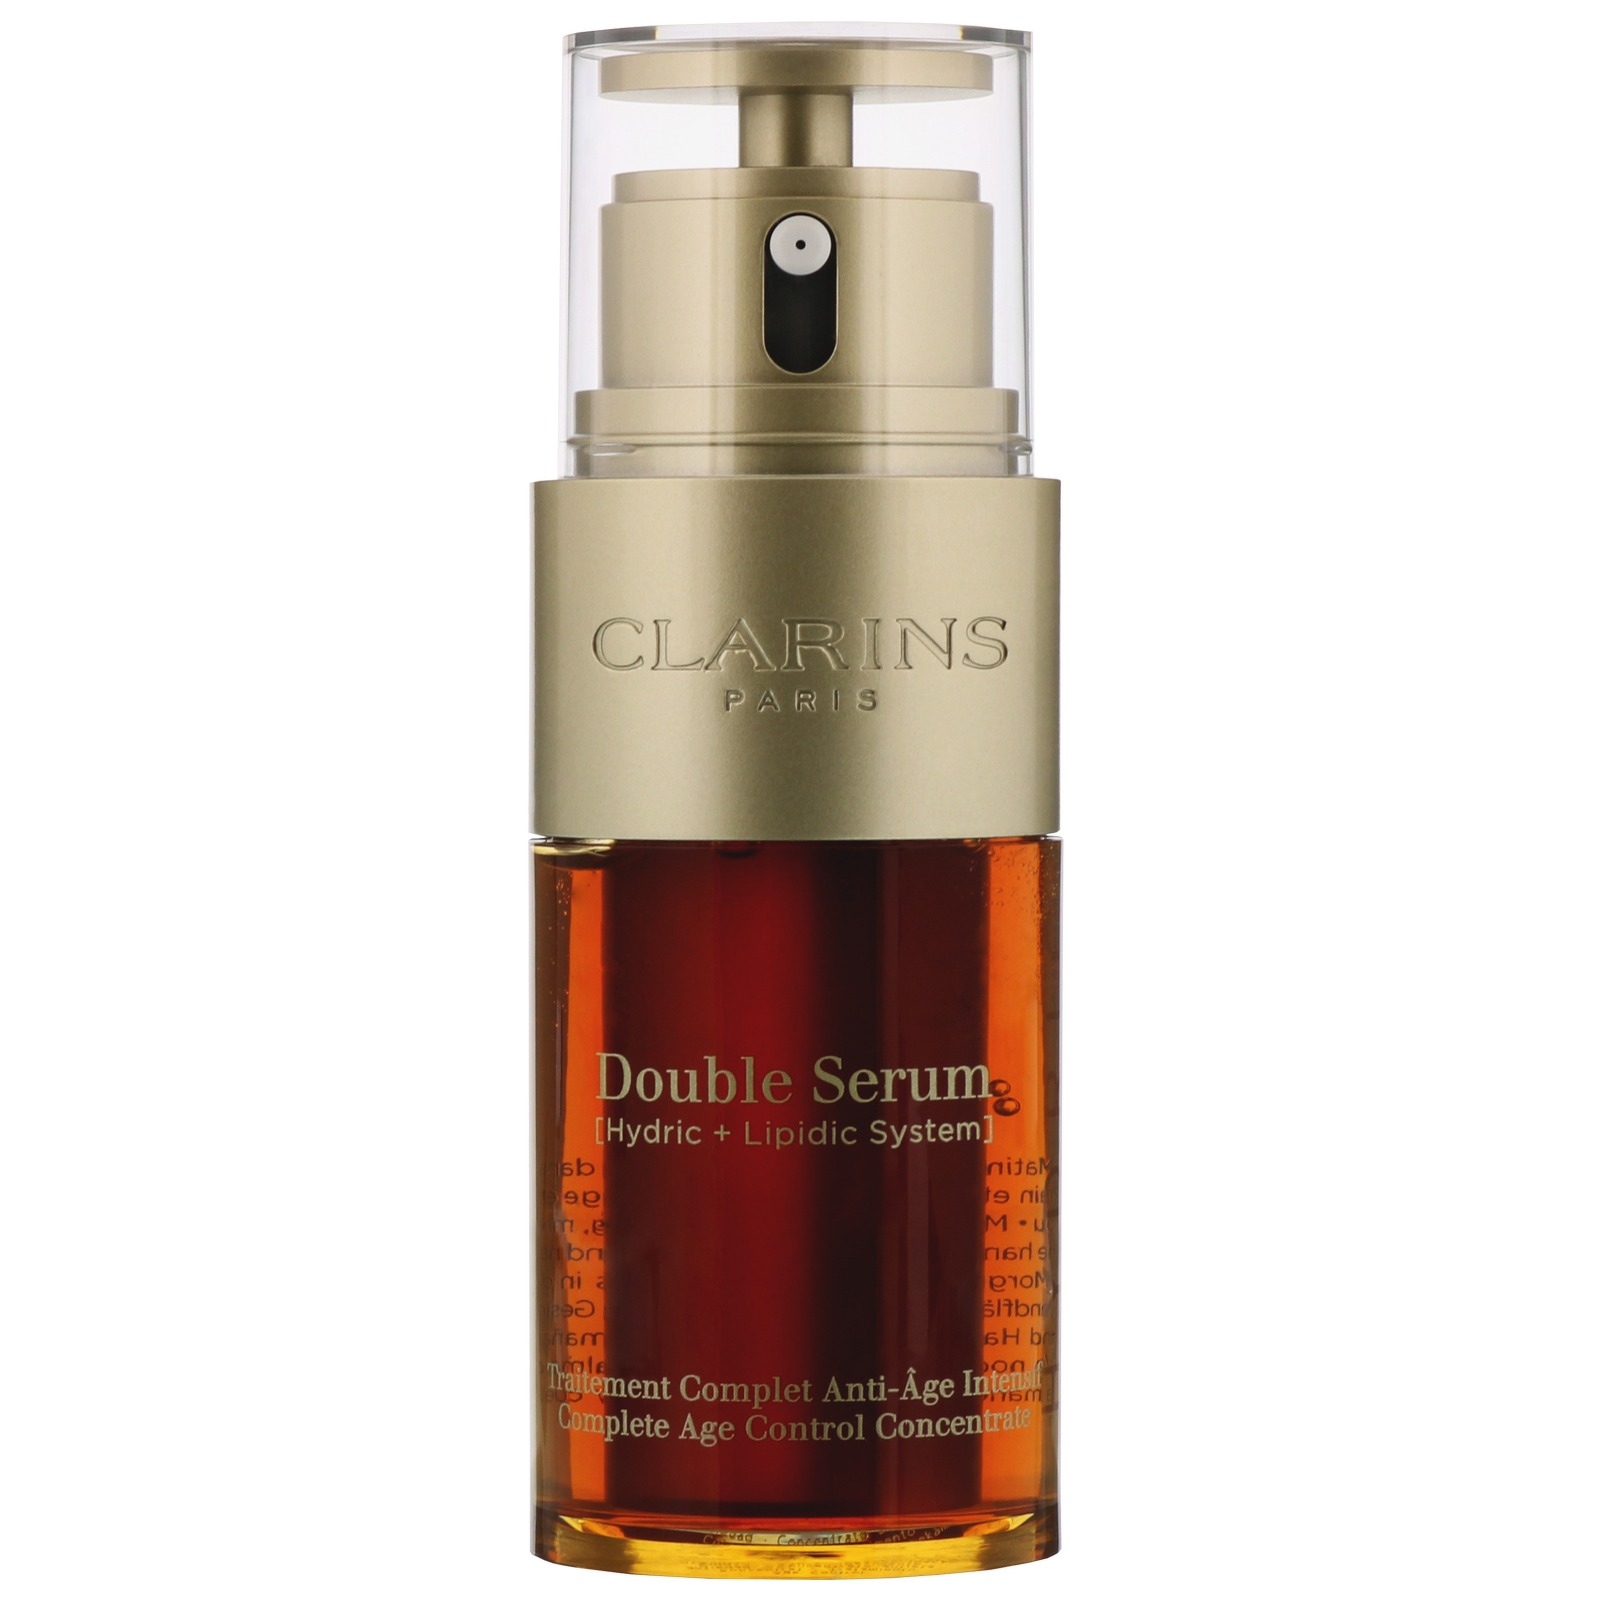 Clarins Double Serum Complete Age Control Concentrate 30ml / 1 fl.oz.